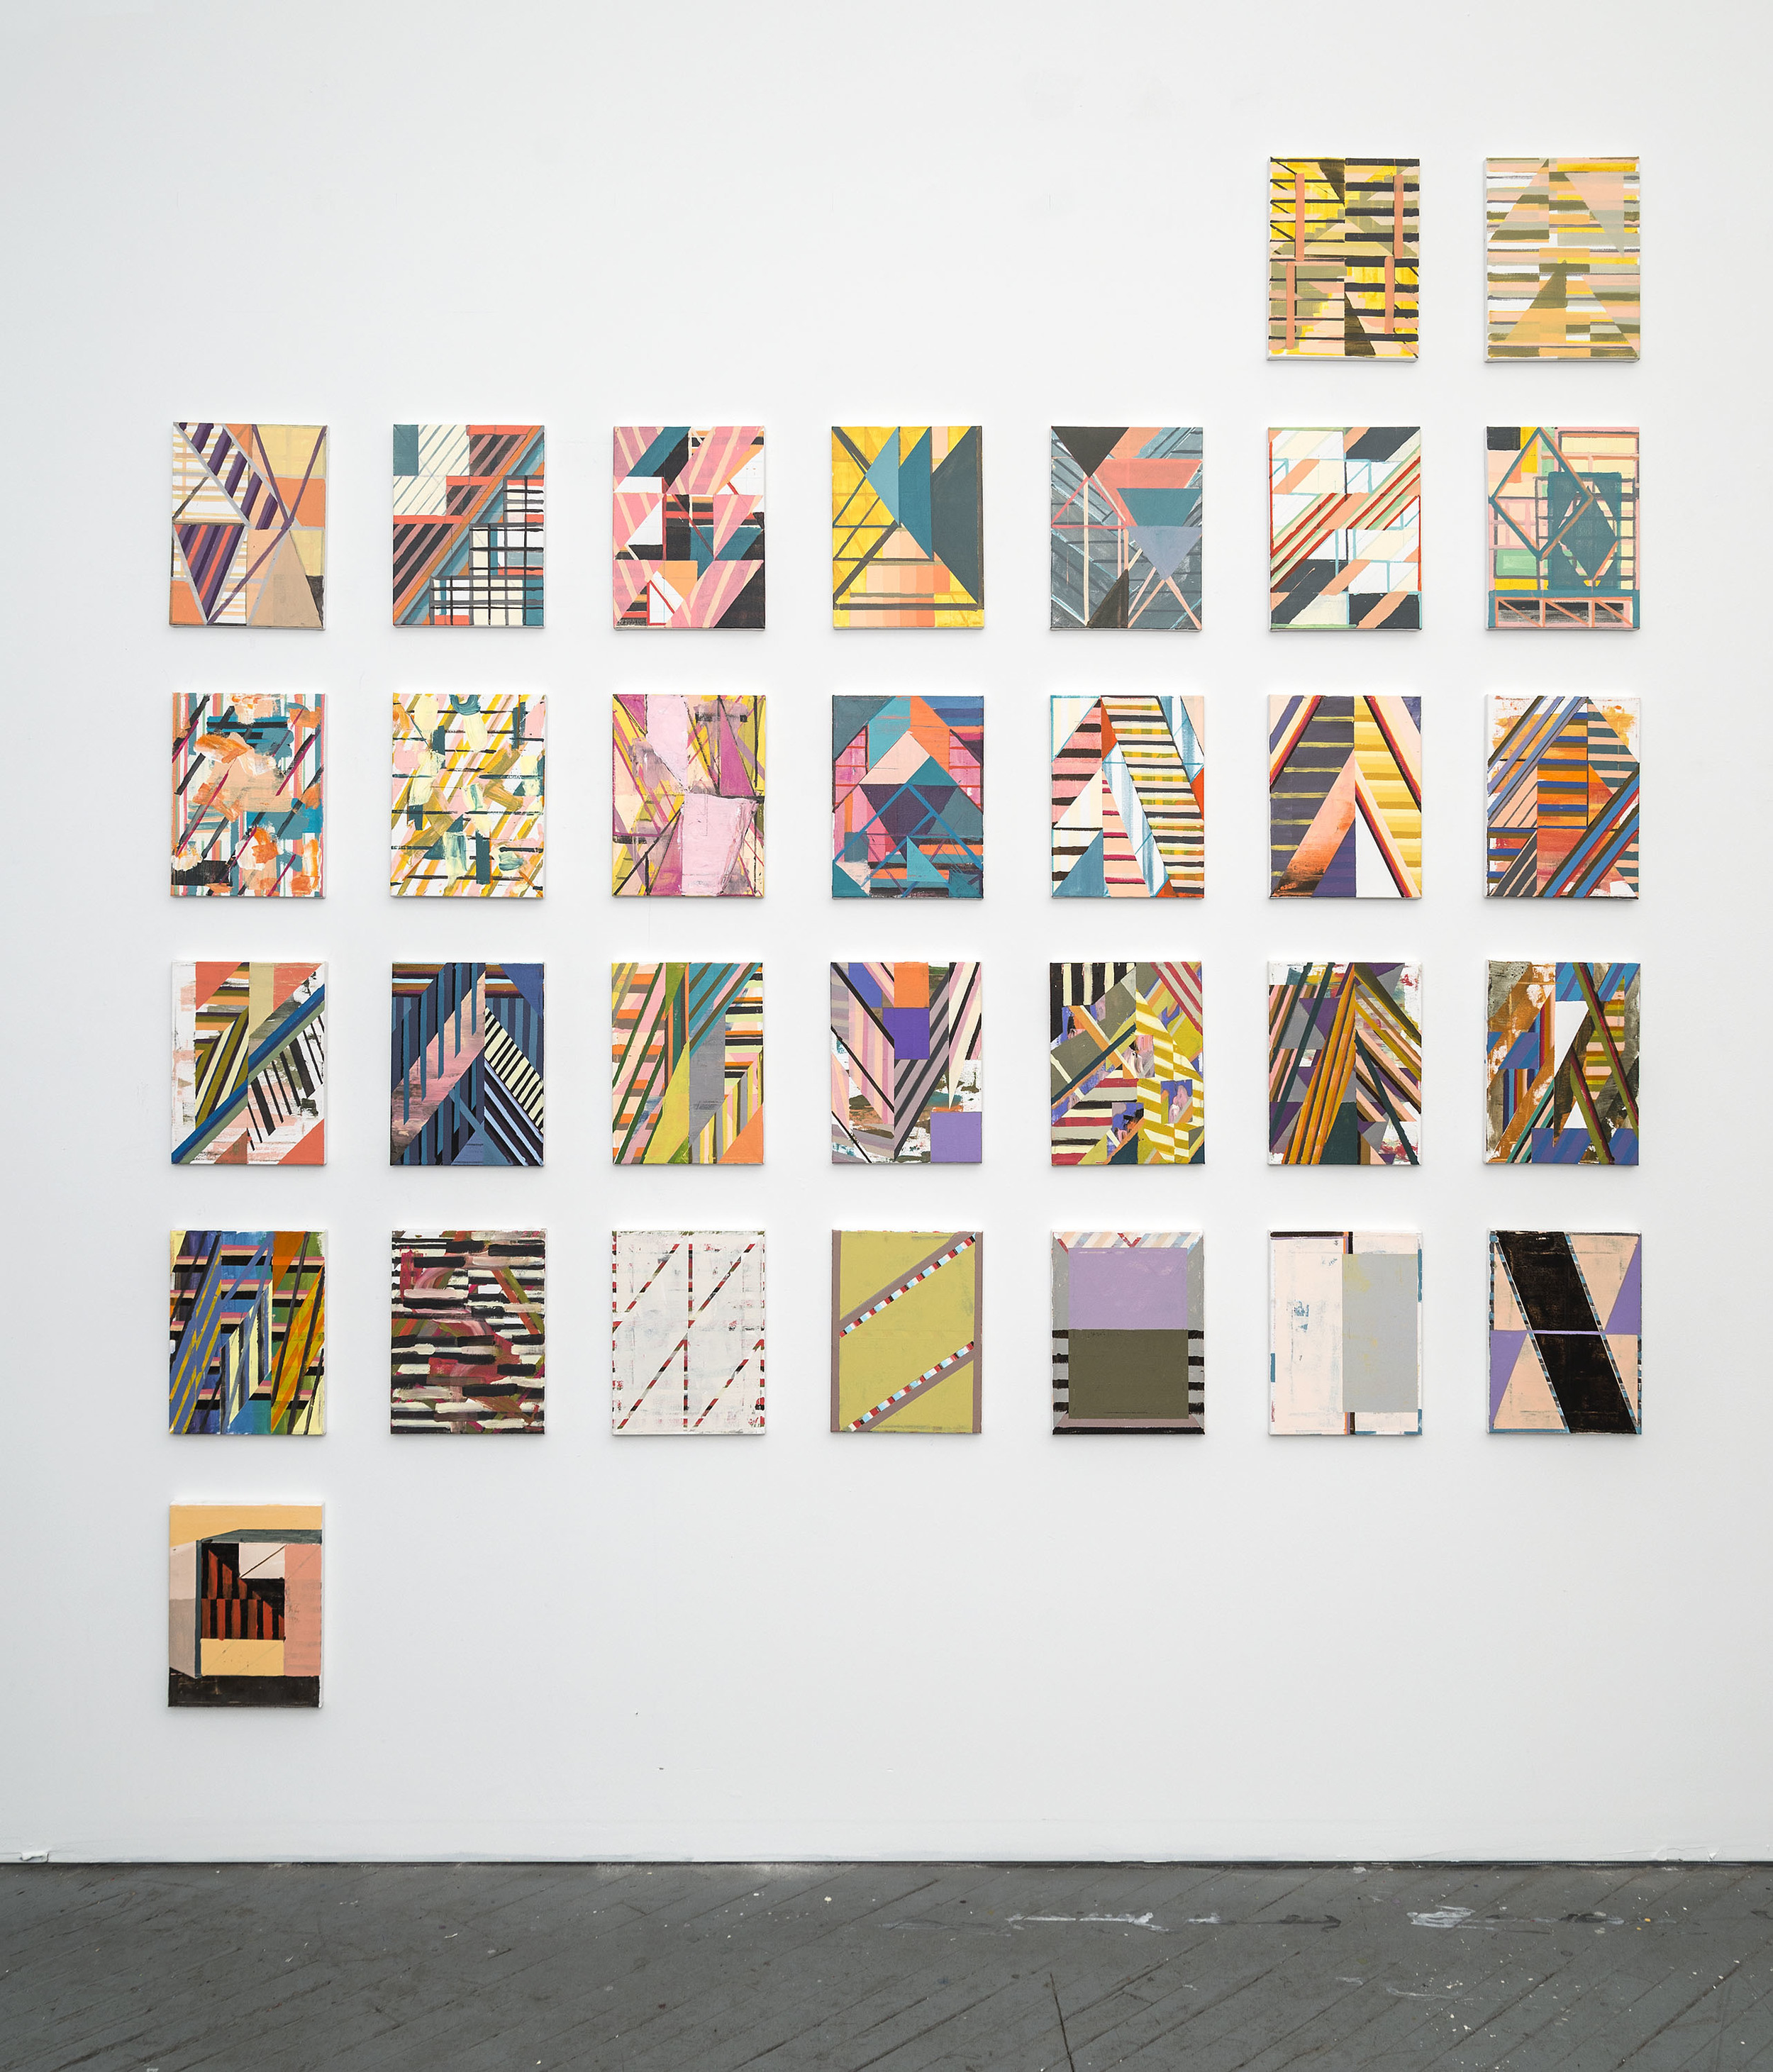 Yearbook (January), 2016,Acrylic and colored pencil on 31 canvases,12 x 9 inches each